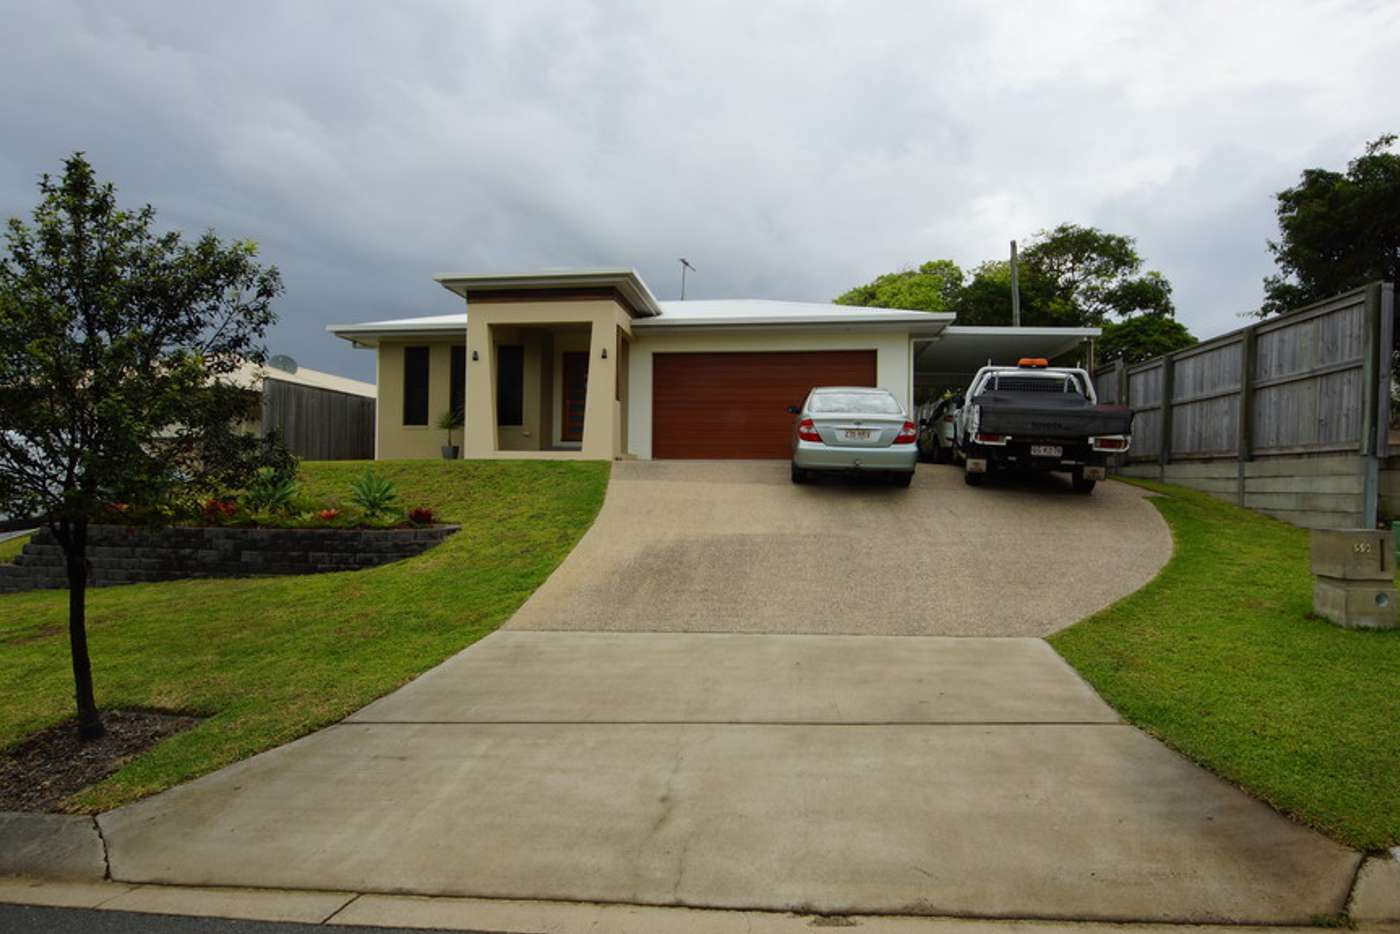 Main view of Homely house listing, 59 Kerrisdale Crescent, Beaconsfield QLD 4740